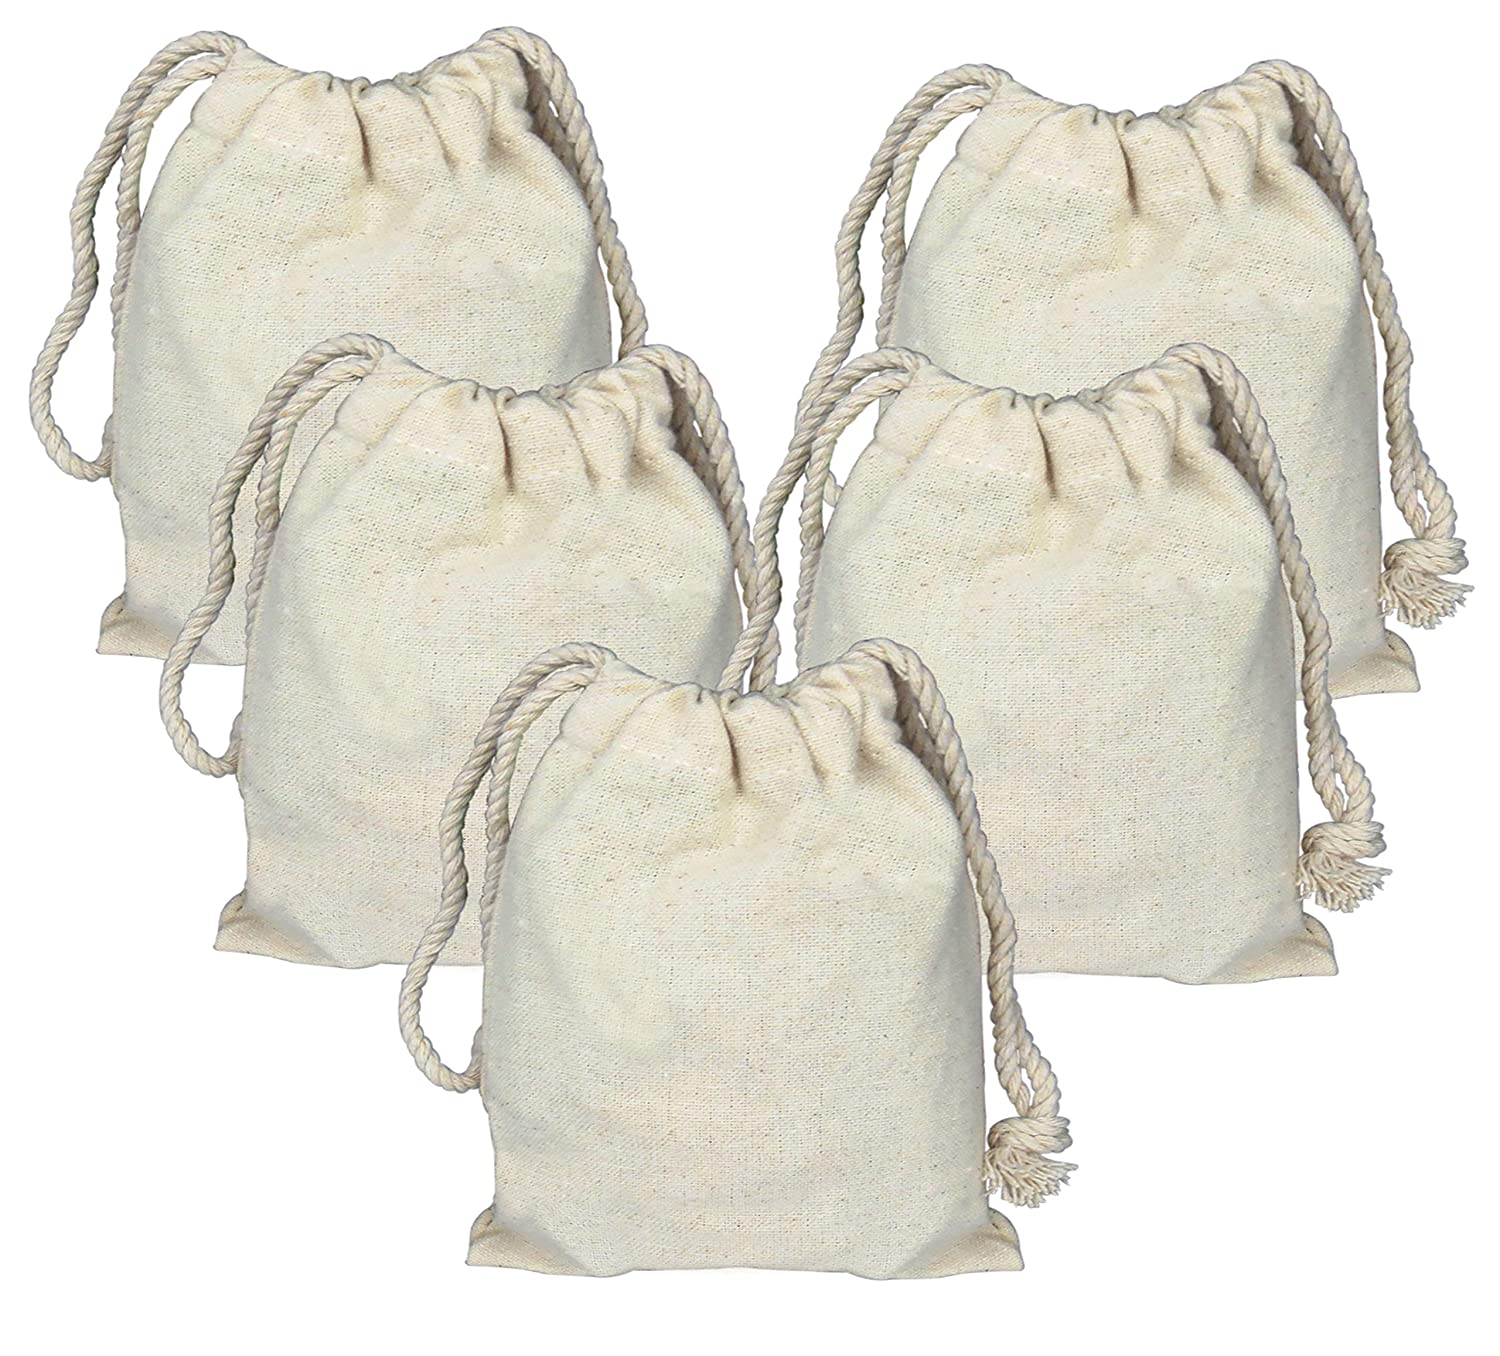 Lontenrea 10 Pcs 6x8 Inches Drawstring Cotton Muslin Bags Reusable Storage Bag (10 PCS 6X8)